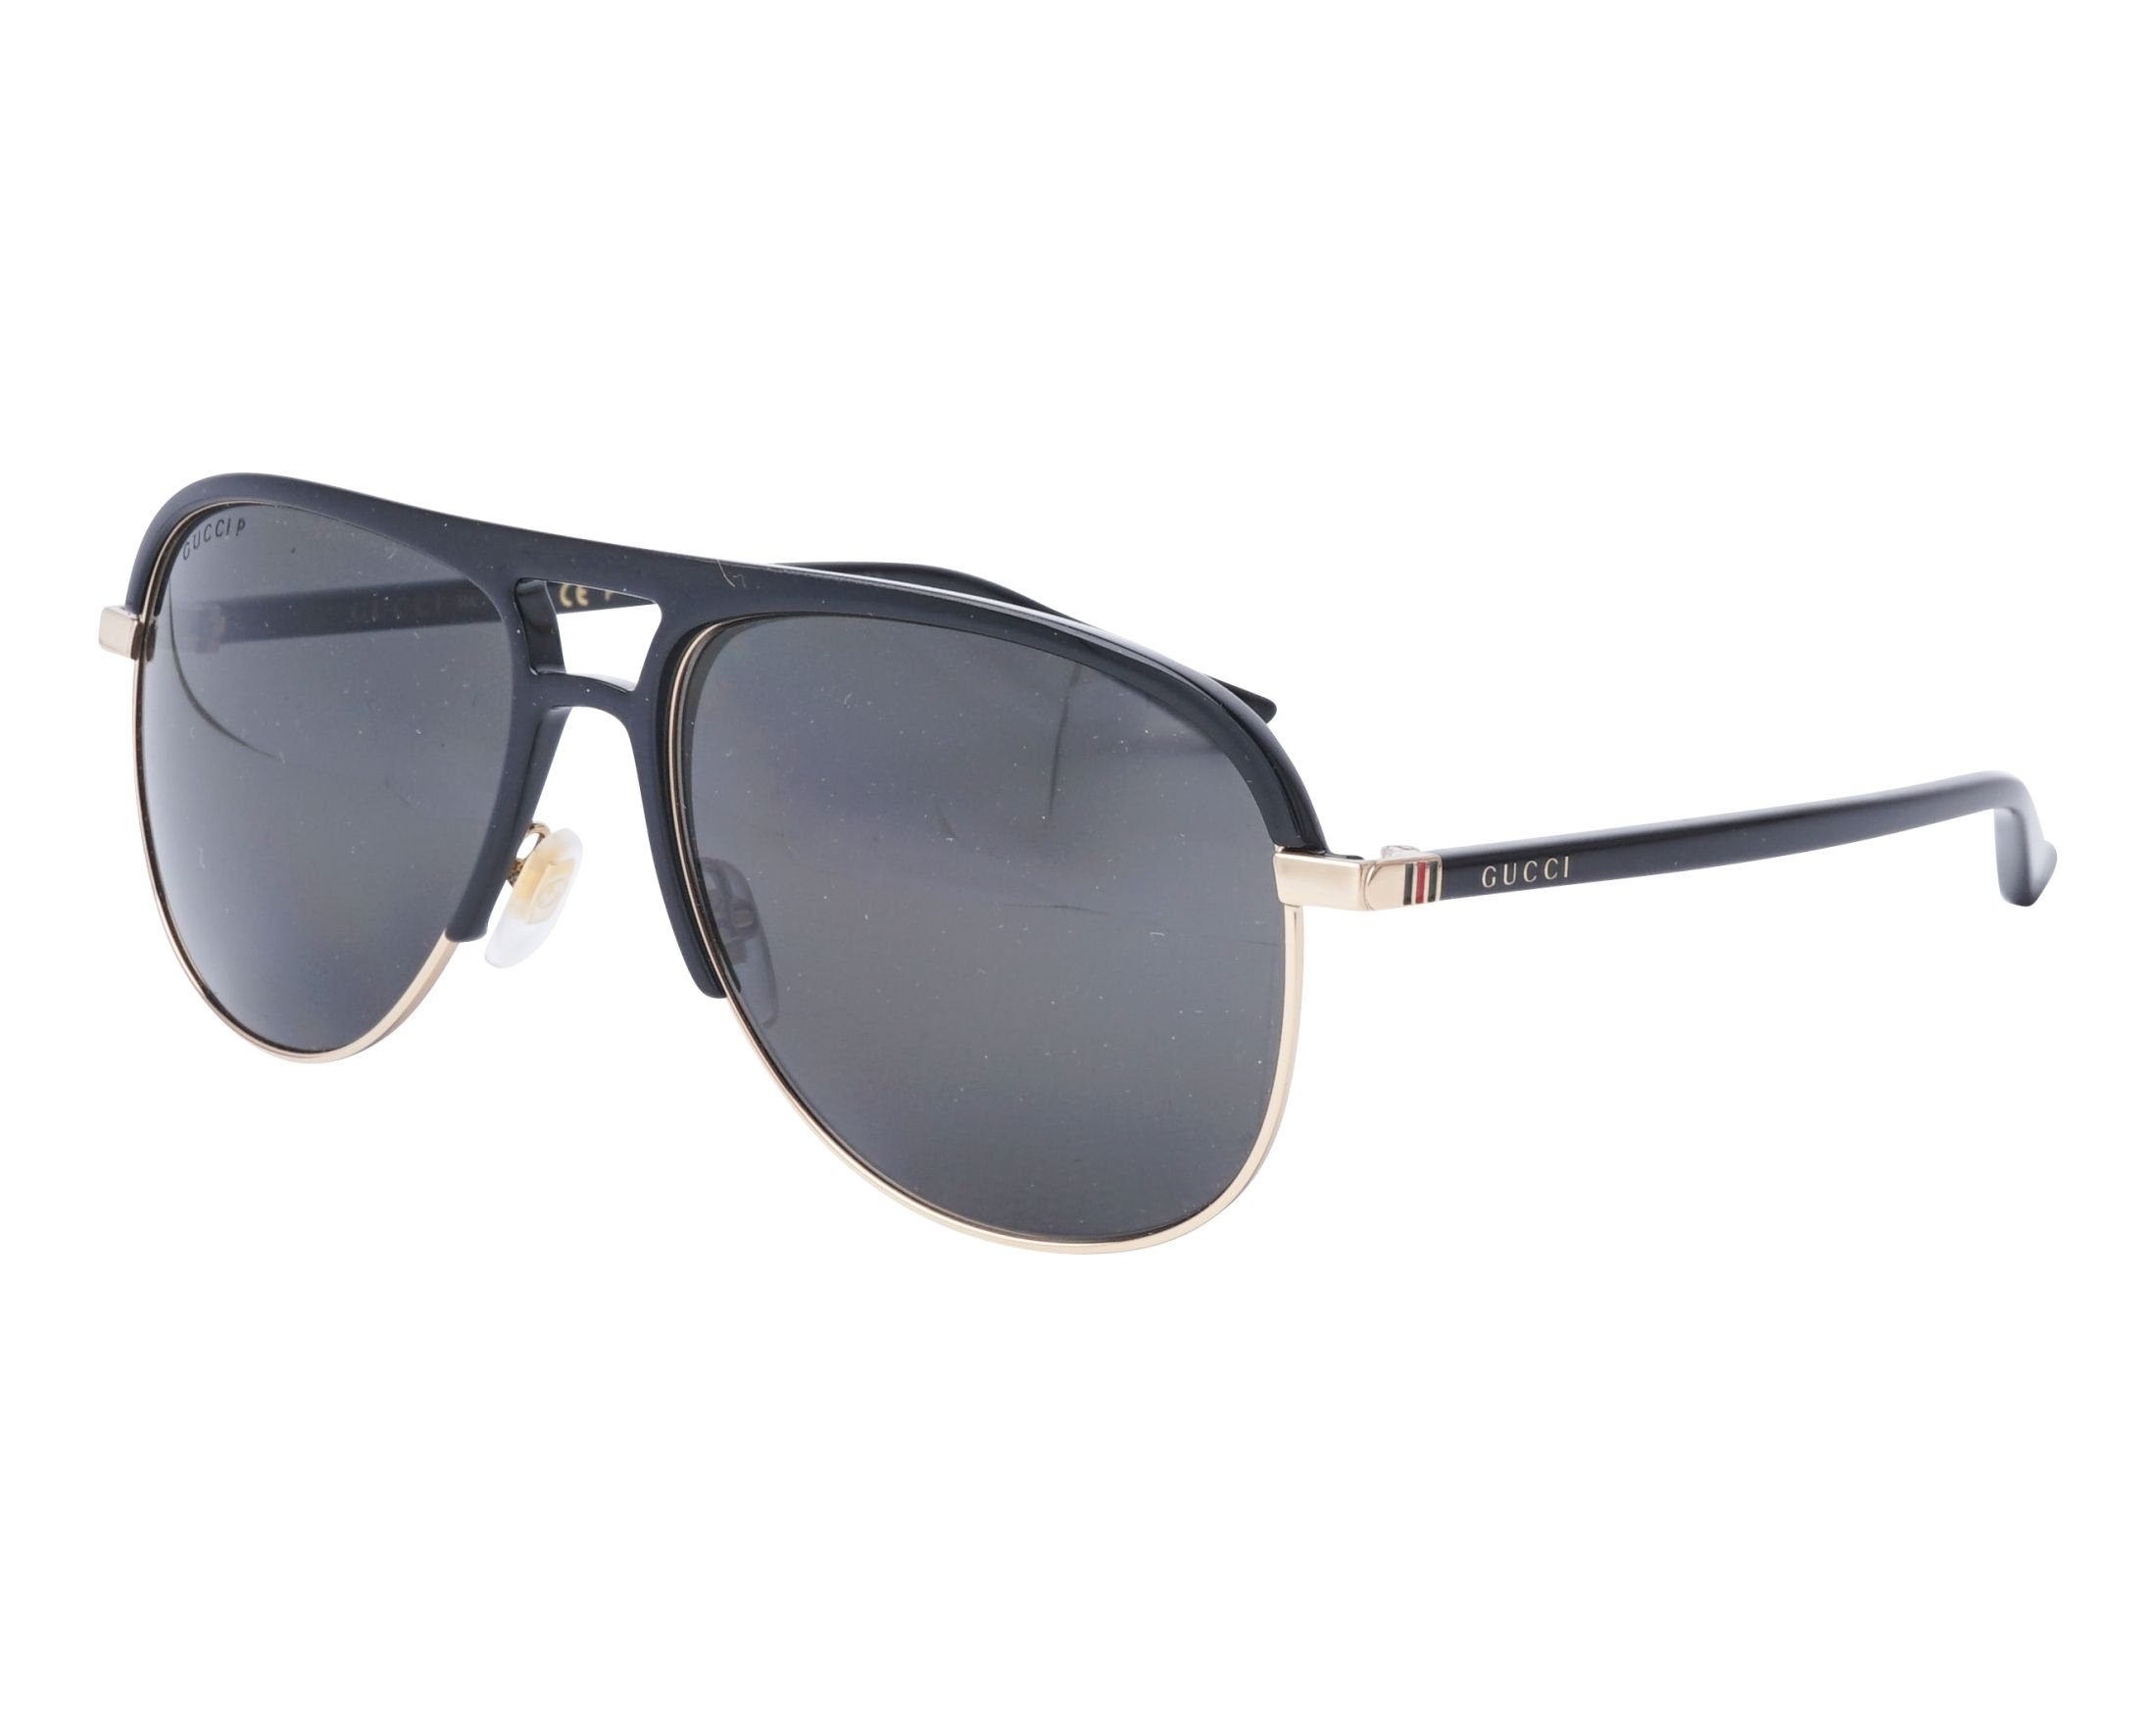 luxurious for and men l coveting frames g three sunglasses persol ultra karat silhouette robb worth report accessories eyewear gold ferrari style from r